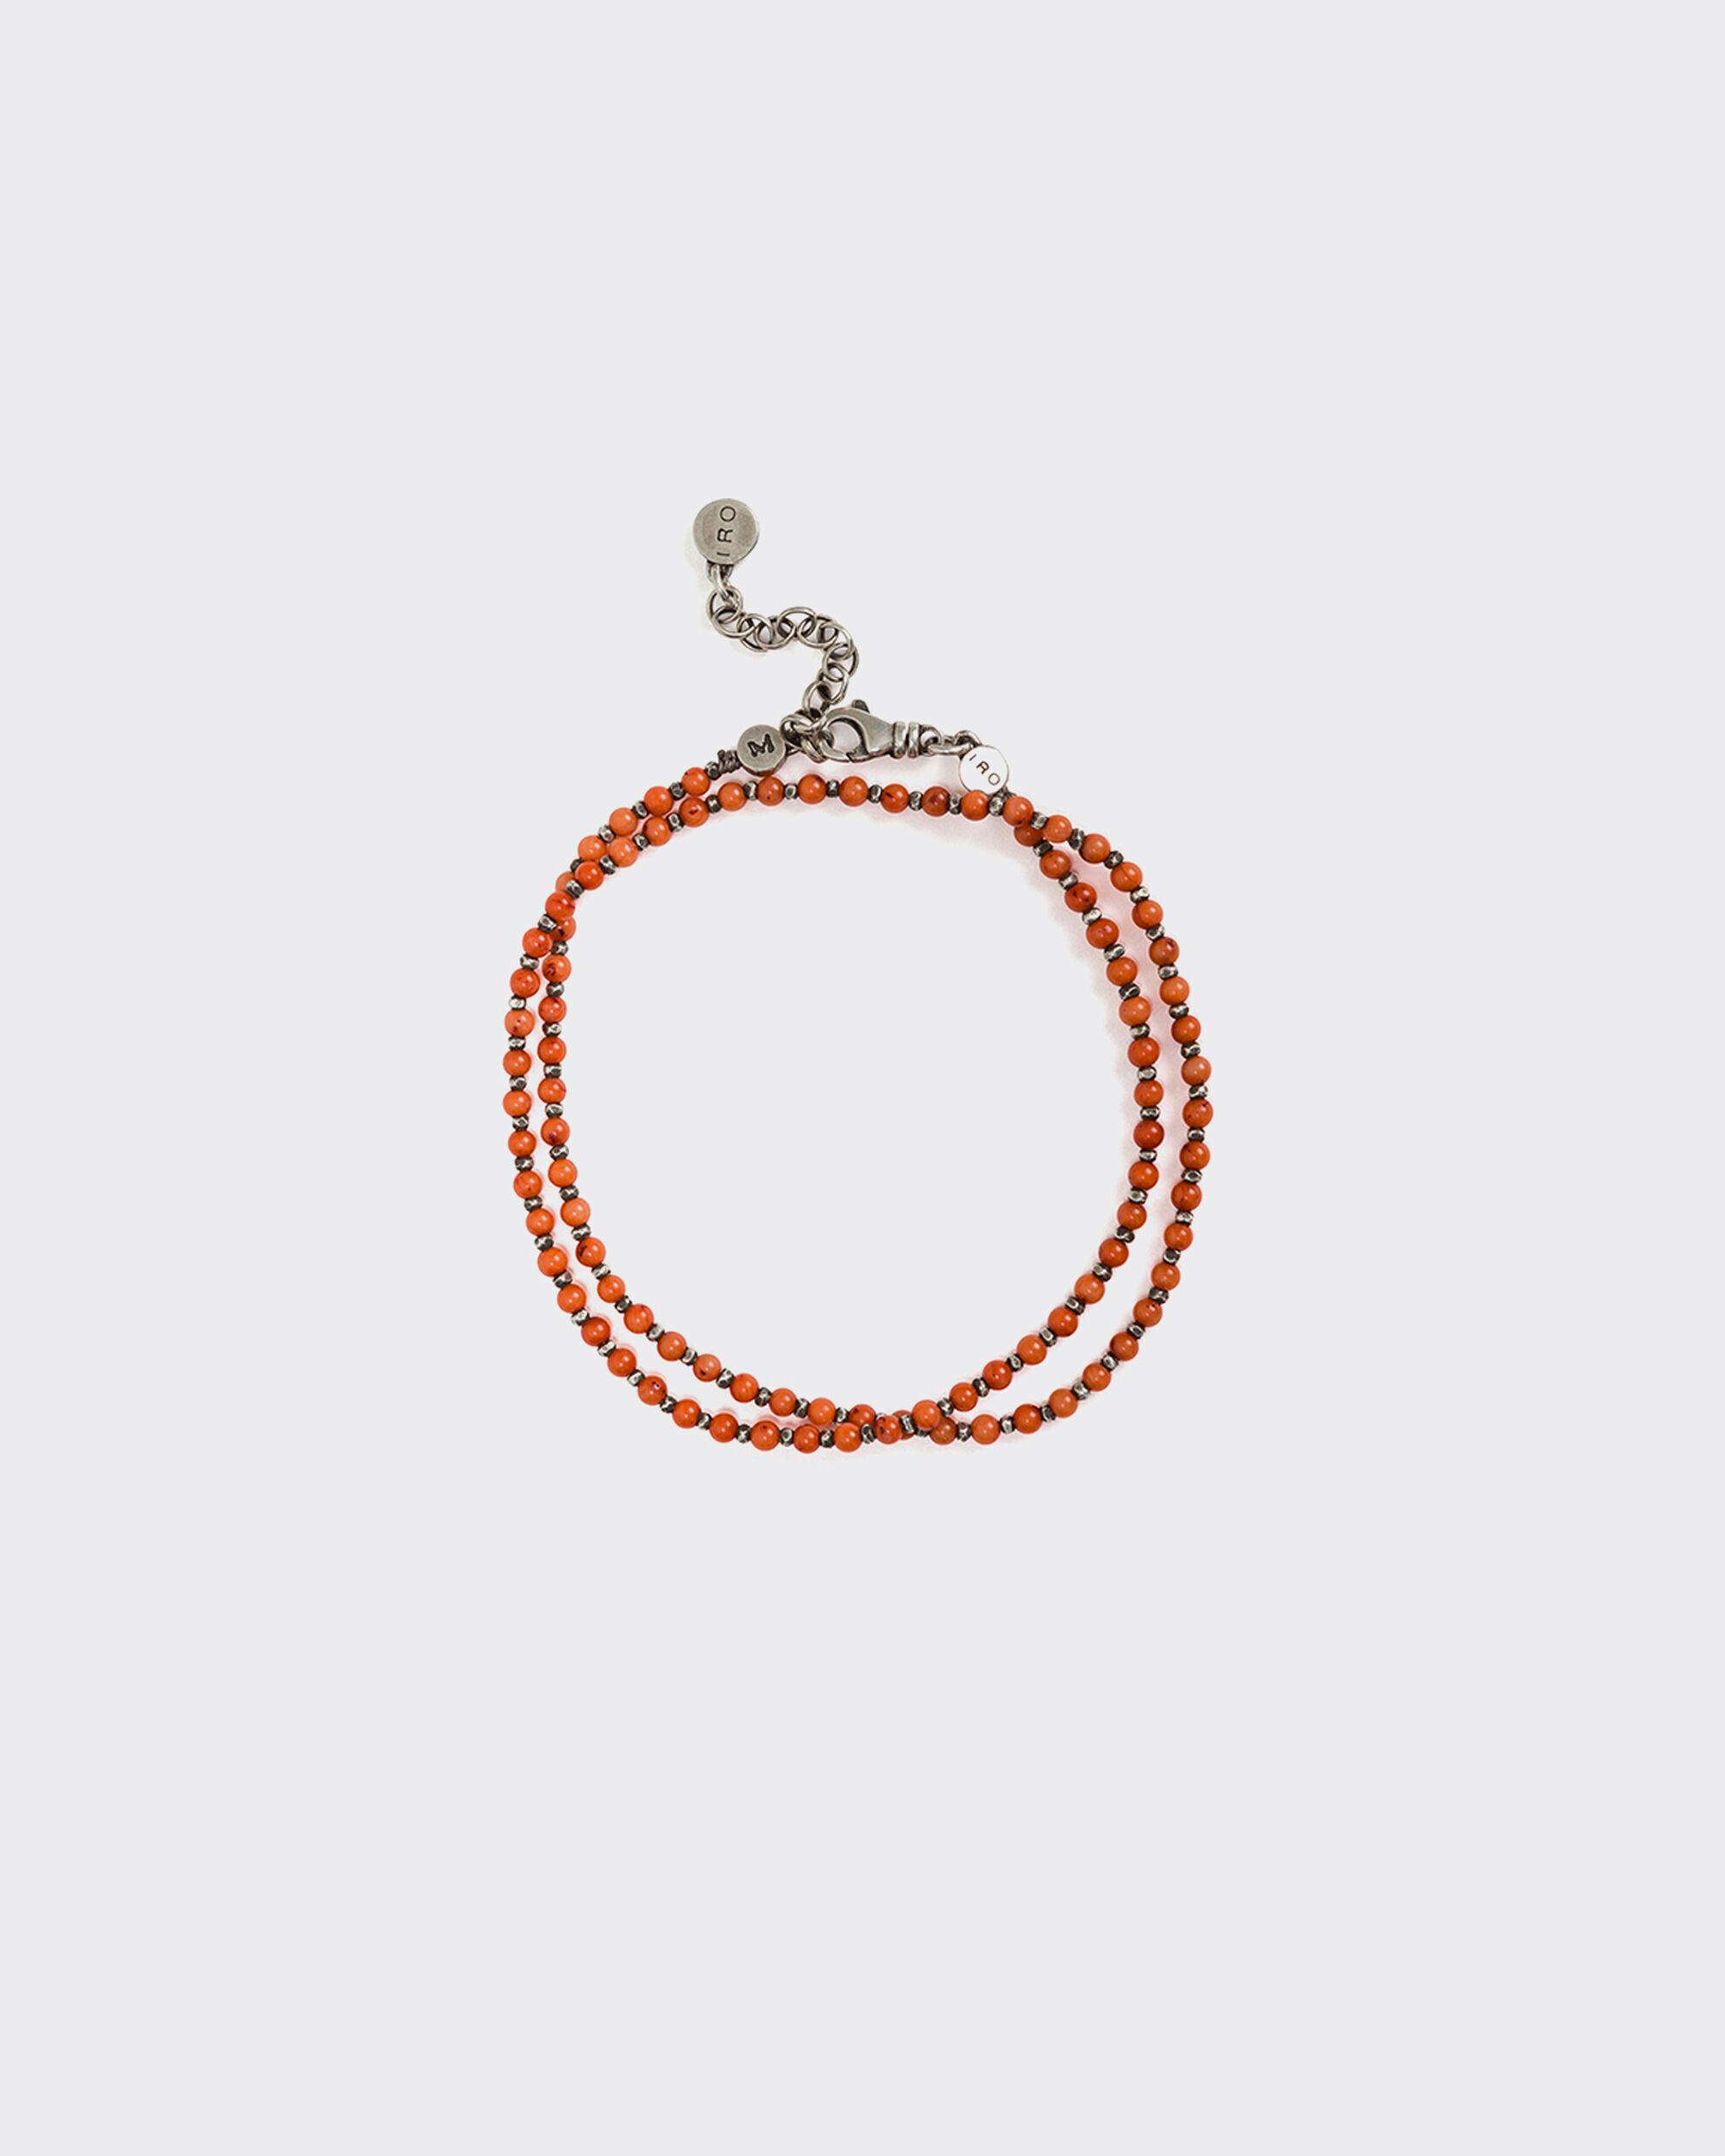 ZOISITE SILVER AND RED CORAL BEAD BRACELET